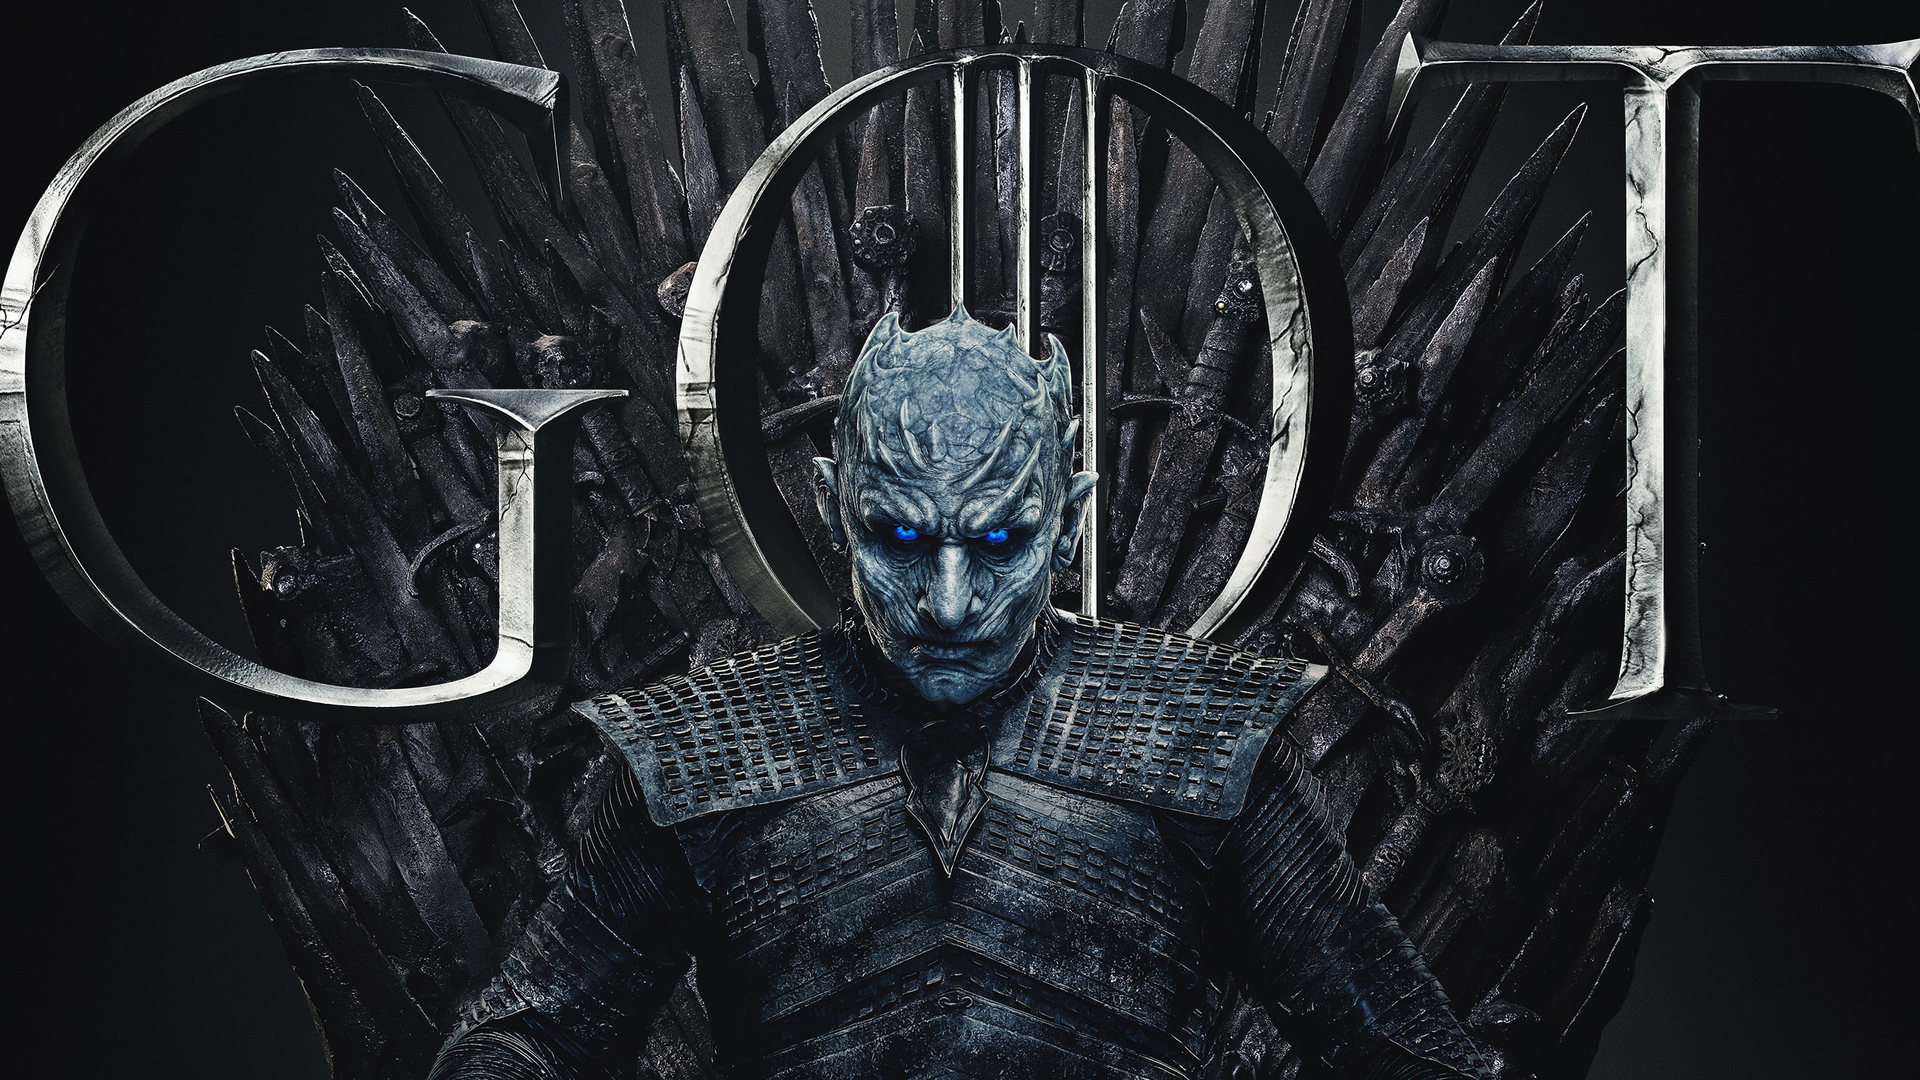 White Walkers Wallpaper Posted By Ethan Peltier